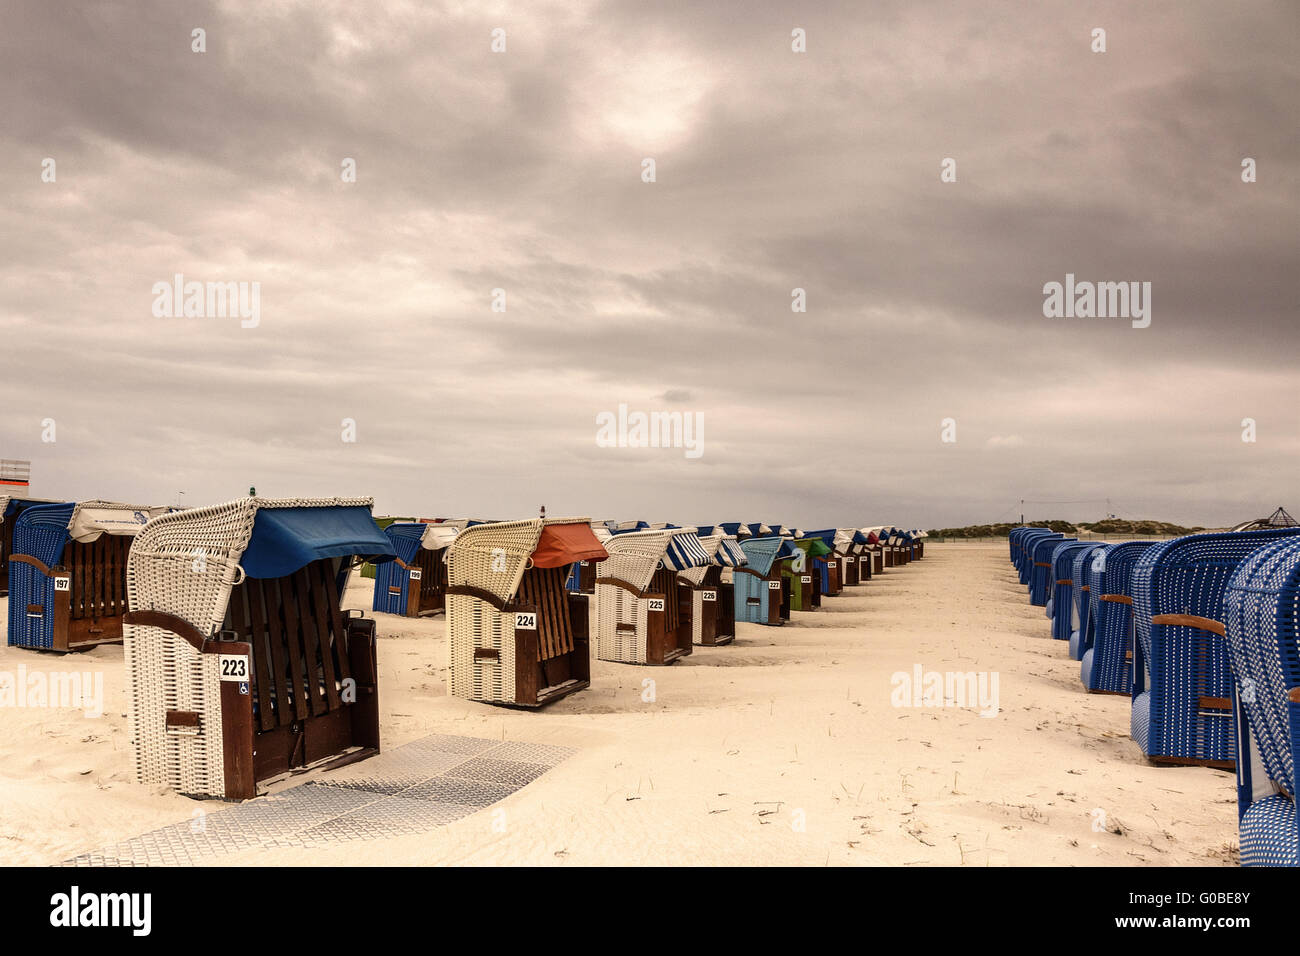 Deck Chairs On The Beach Wanemunde Style Germany - Stock Image